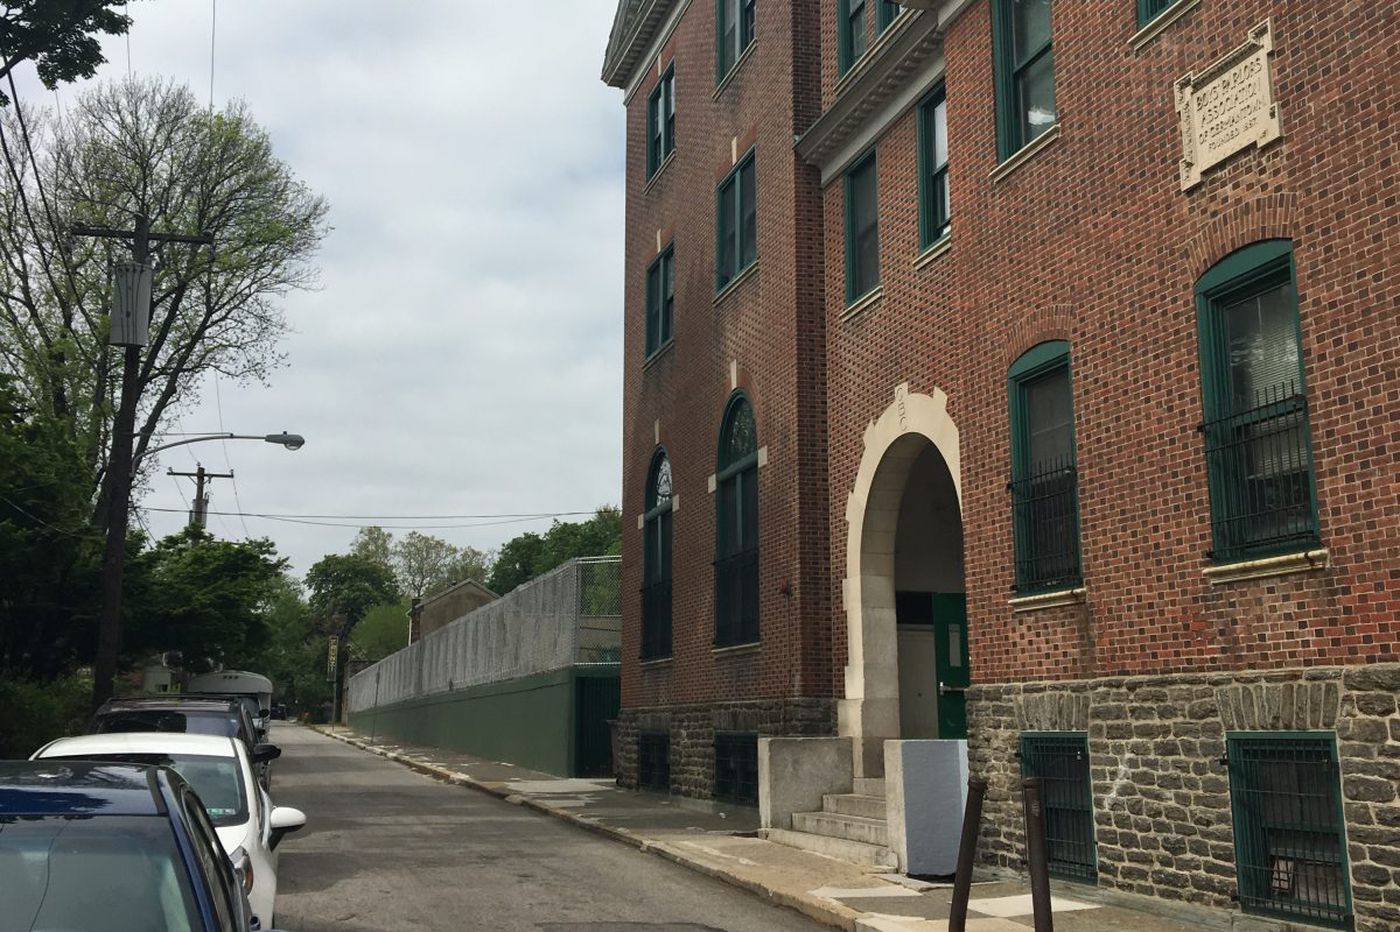 Don't let race and class issues stand in the way of Germantown club's historic designation | Opinion